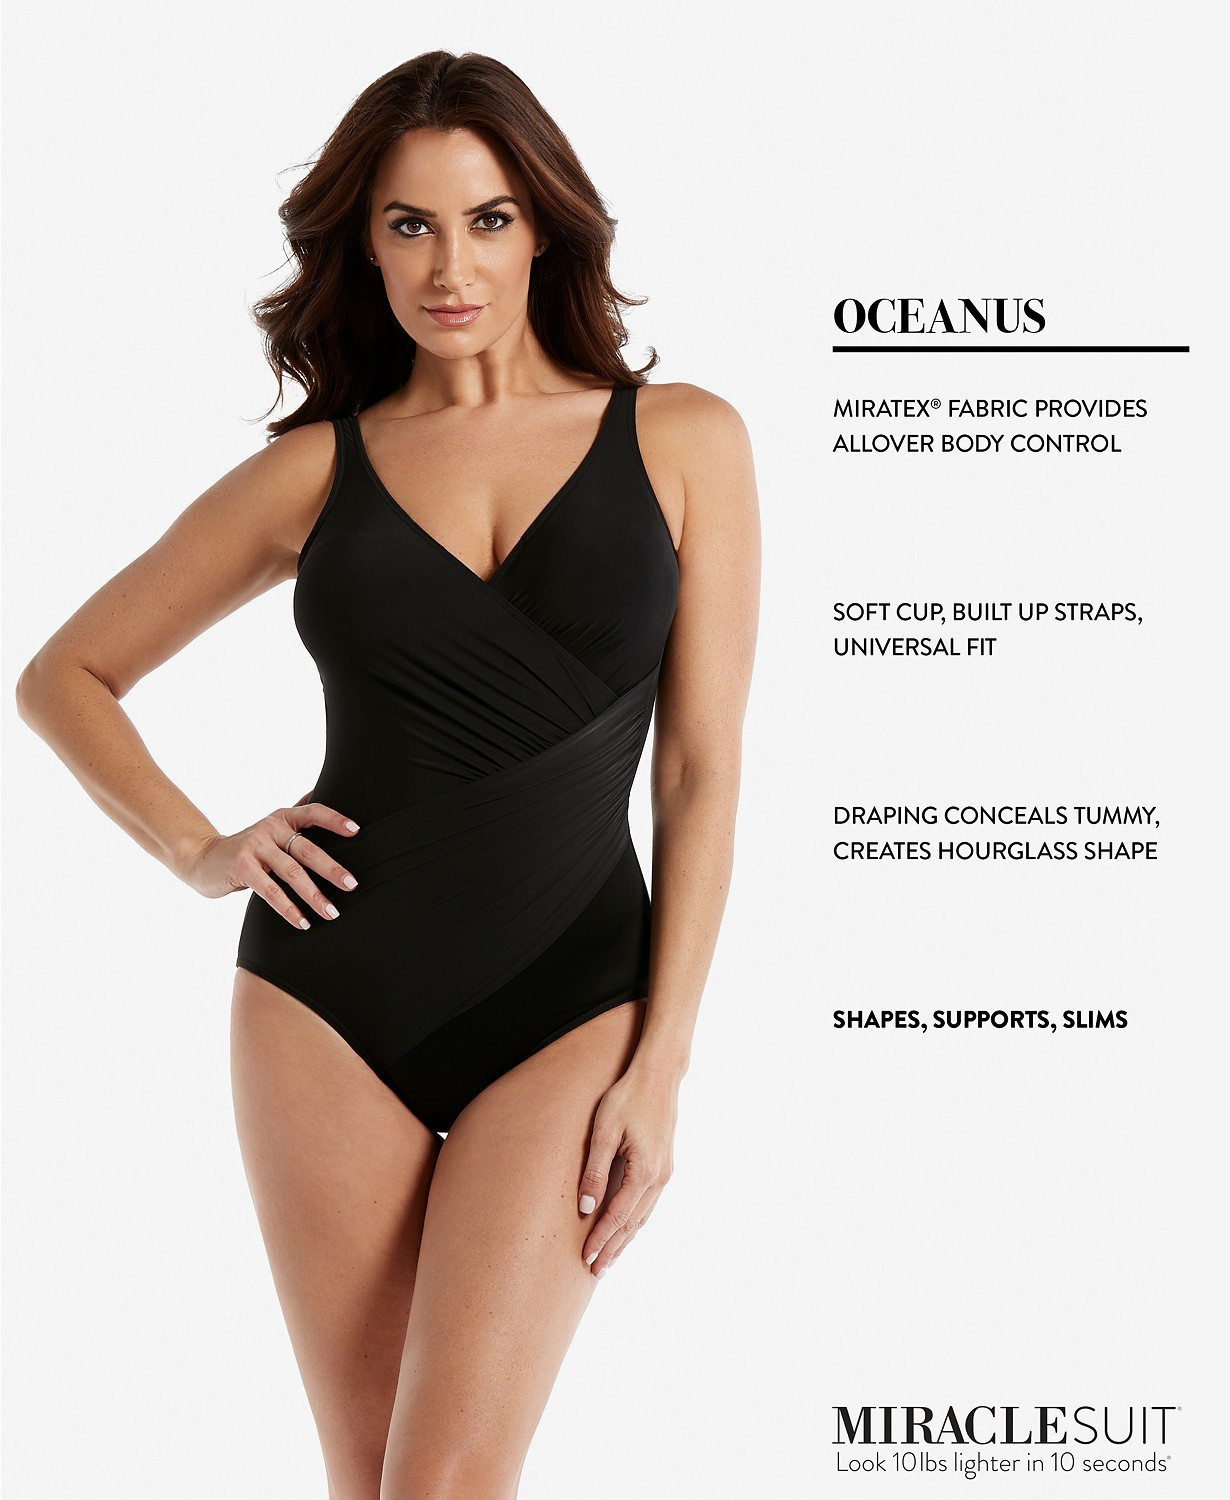 Miraclesuit Womens Swimwear Must Have Oceanus Tummy Control V-Neckline Soft Cup One Piece Swimsuit